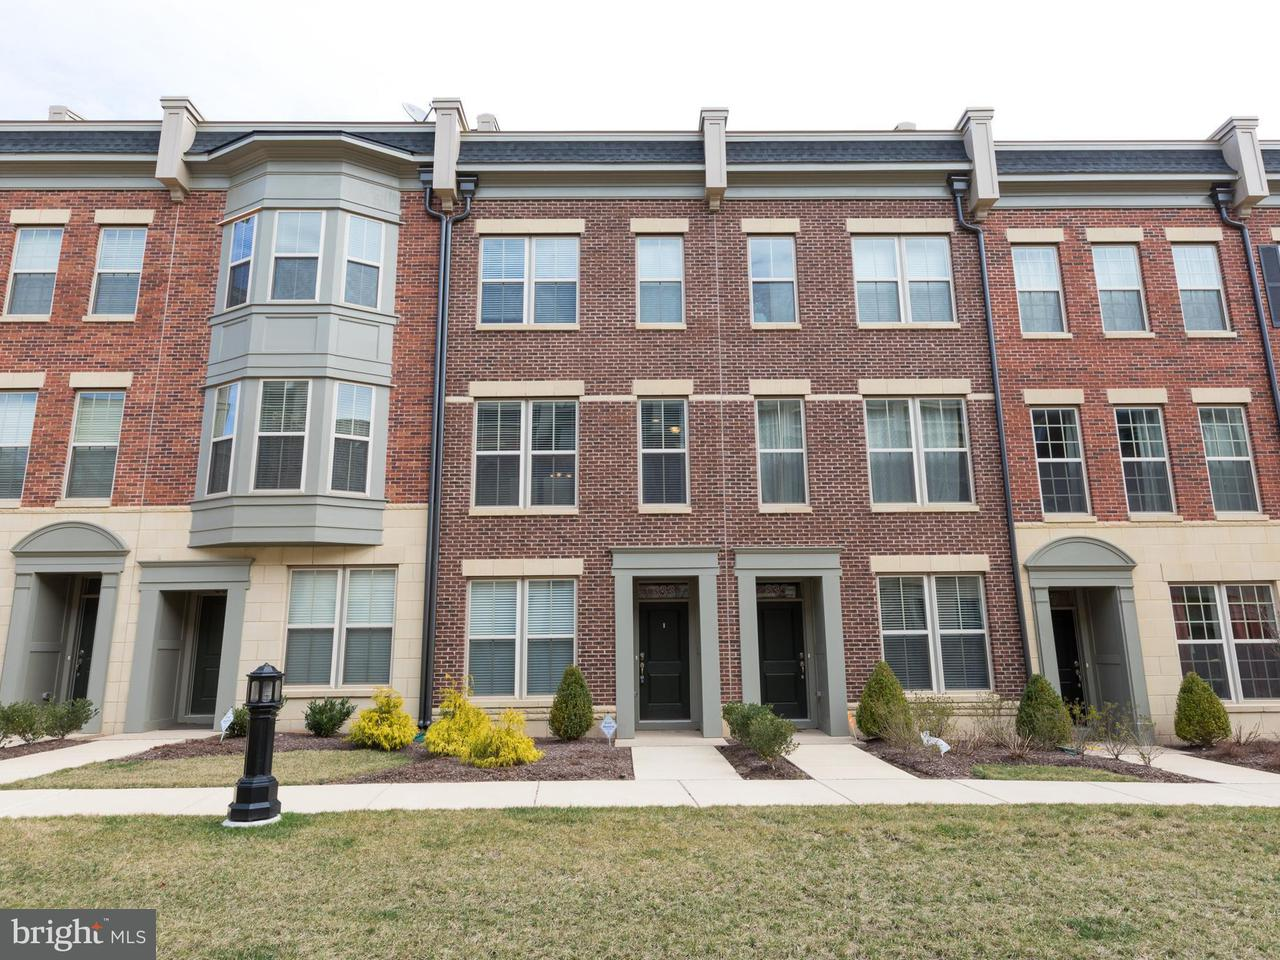 Townhouse for Sale at 833 Regents Sq #349 833 Regents Sq #349 Oxon Hill, Maryland 20745 United States